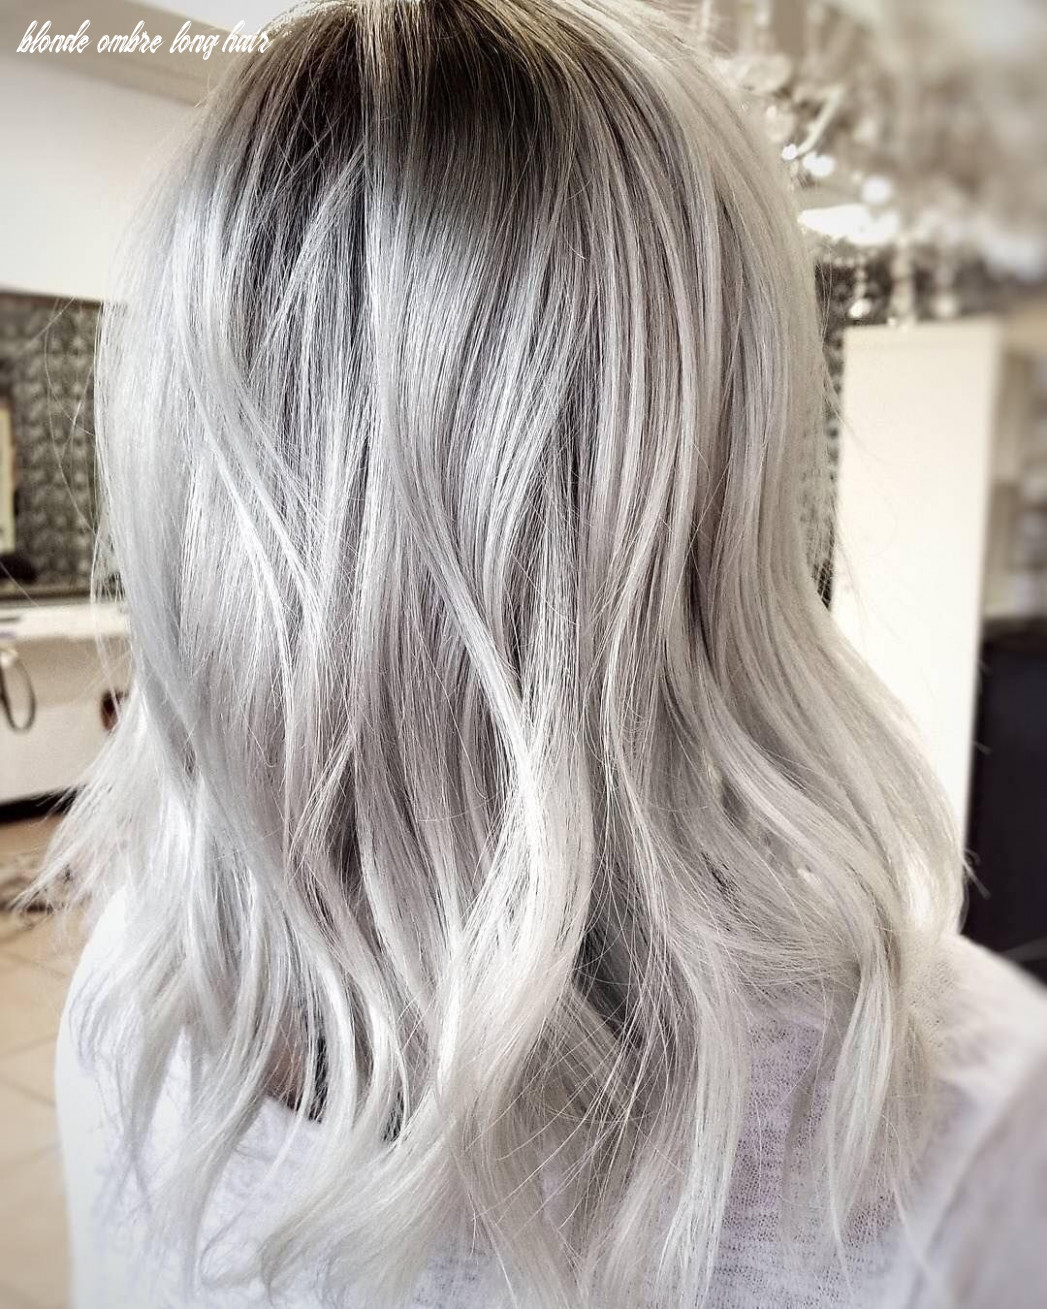 Ten gorgeous ombre and balayage hairstyles for long hair